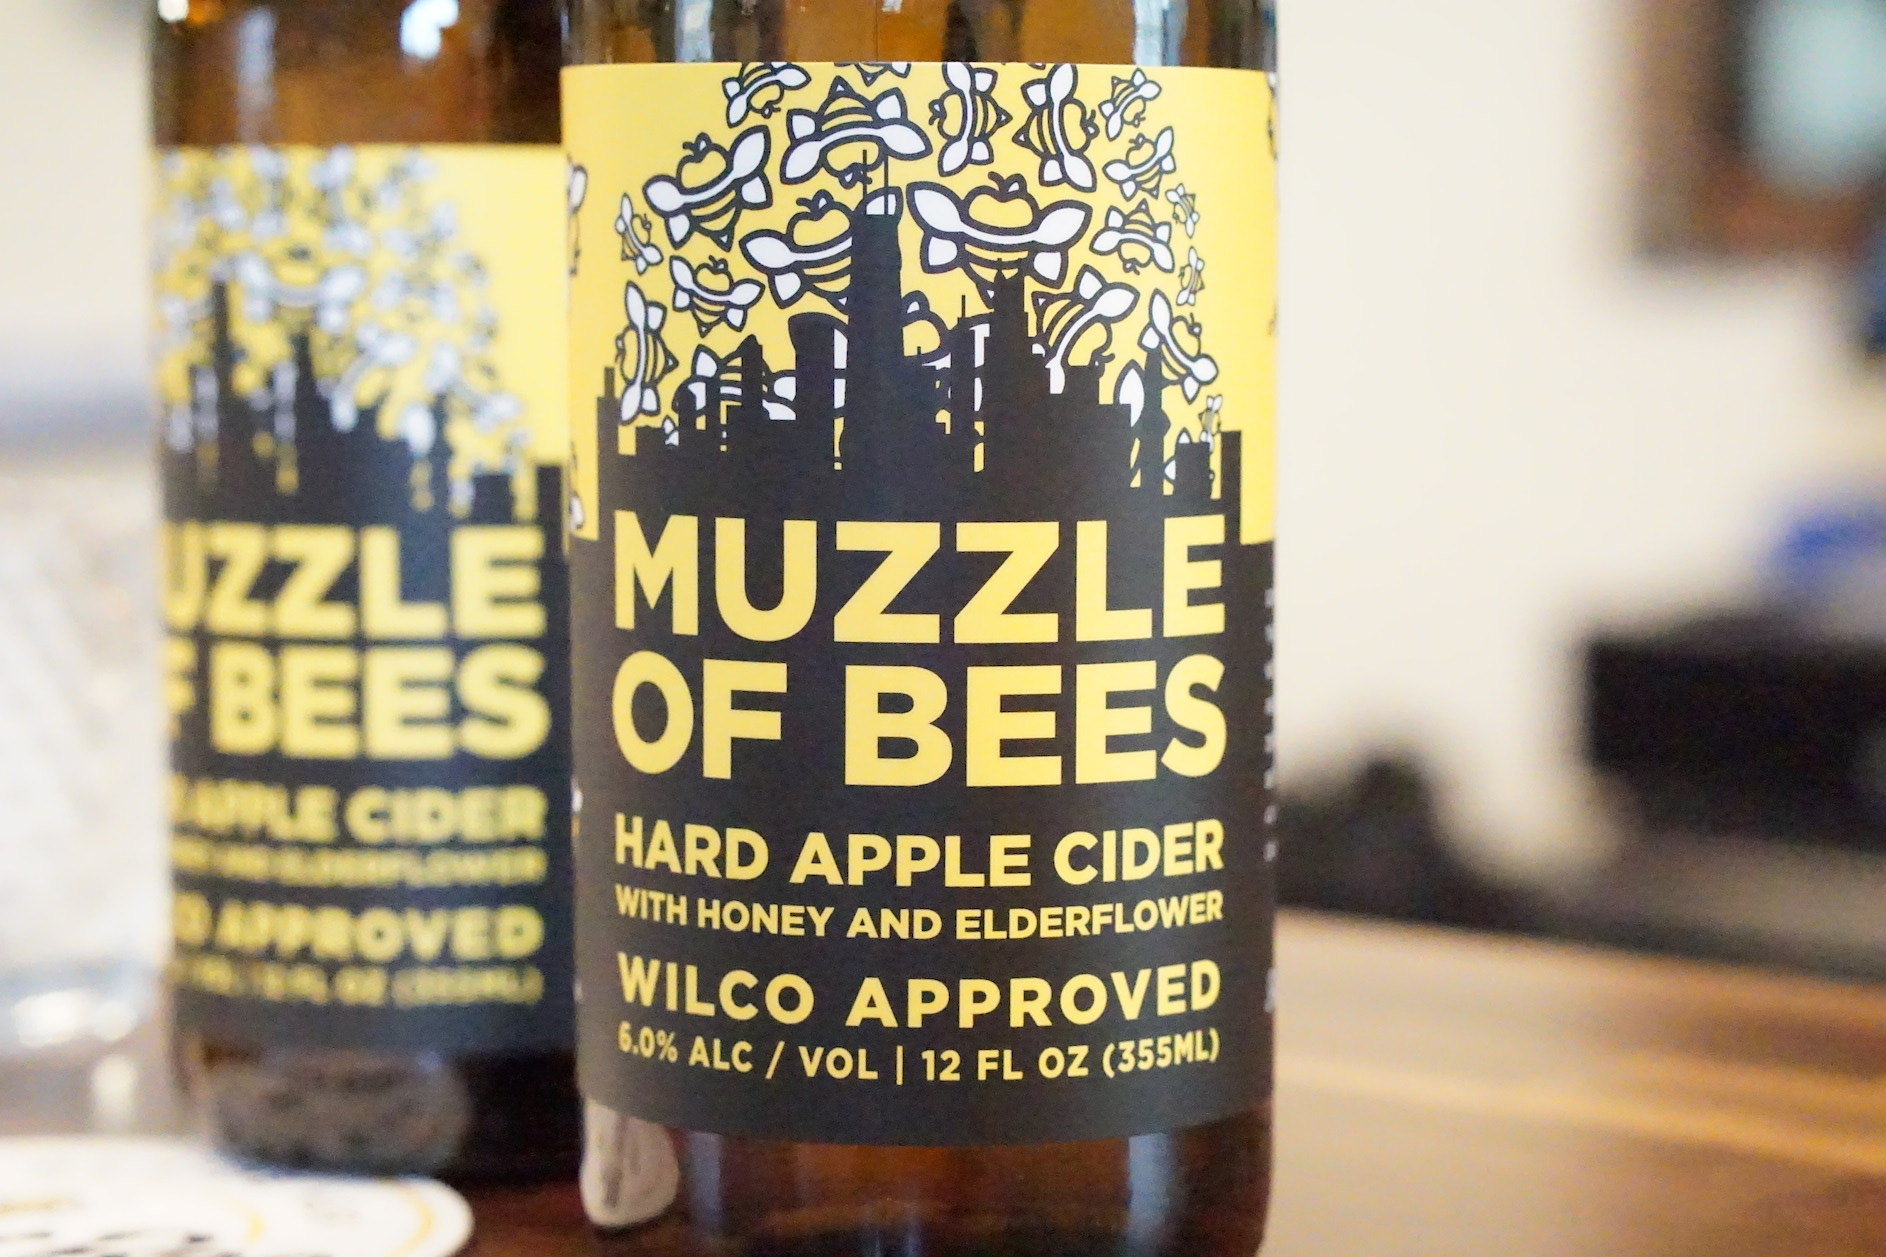 This Honey-Infused Cider Is a Tribute to Wilco